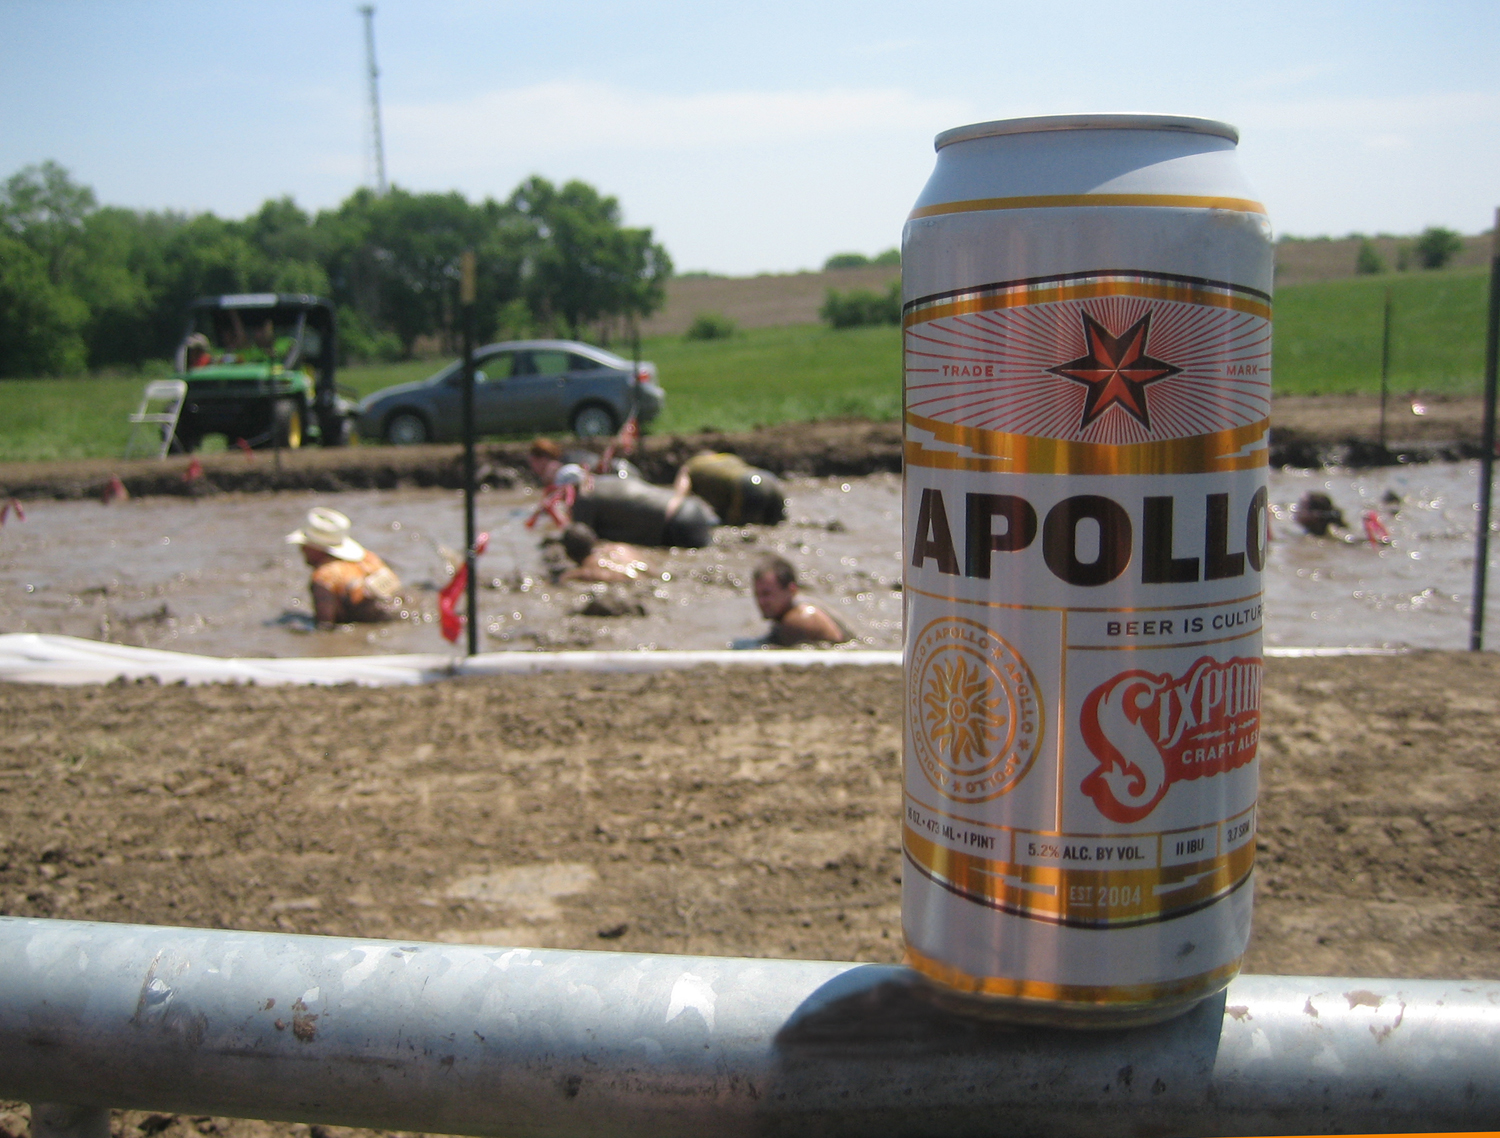 Apollo summer Kristallweizen beer is great for the sun.